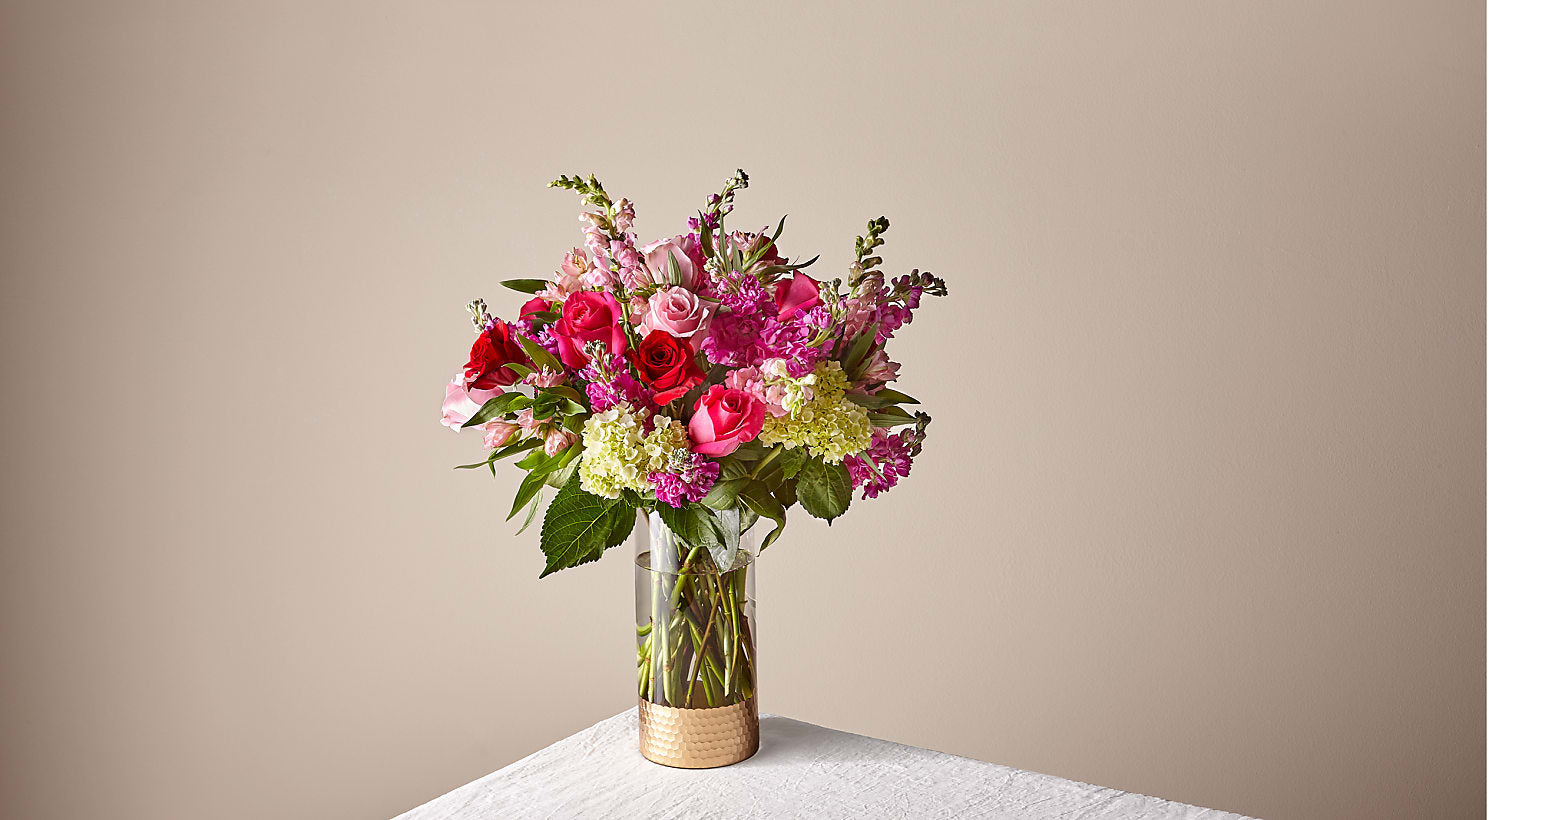 You & Me Luxury Bouquet - Image 1 Of 6